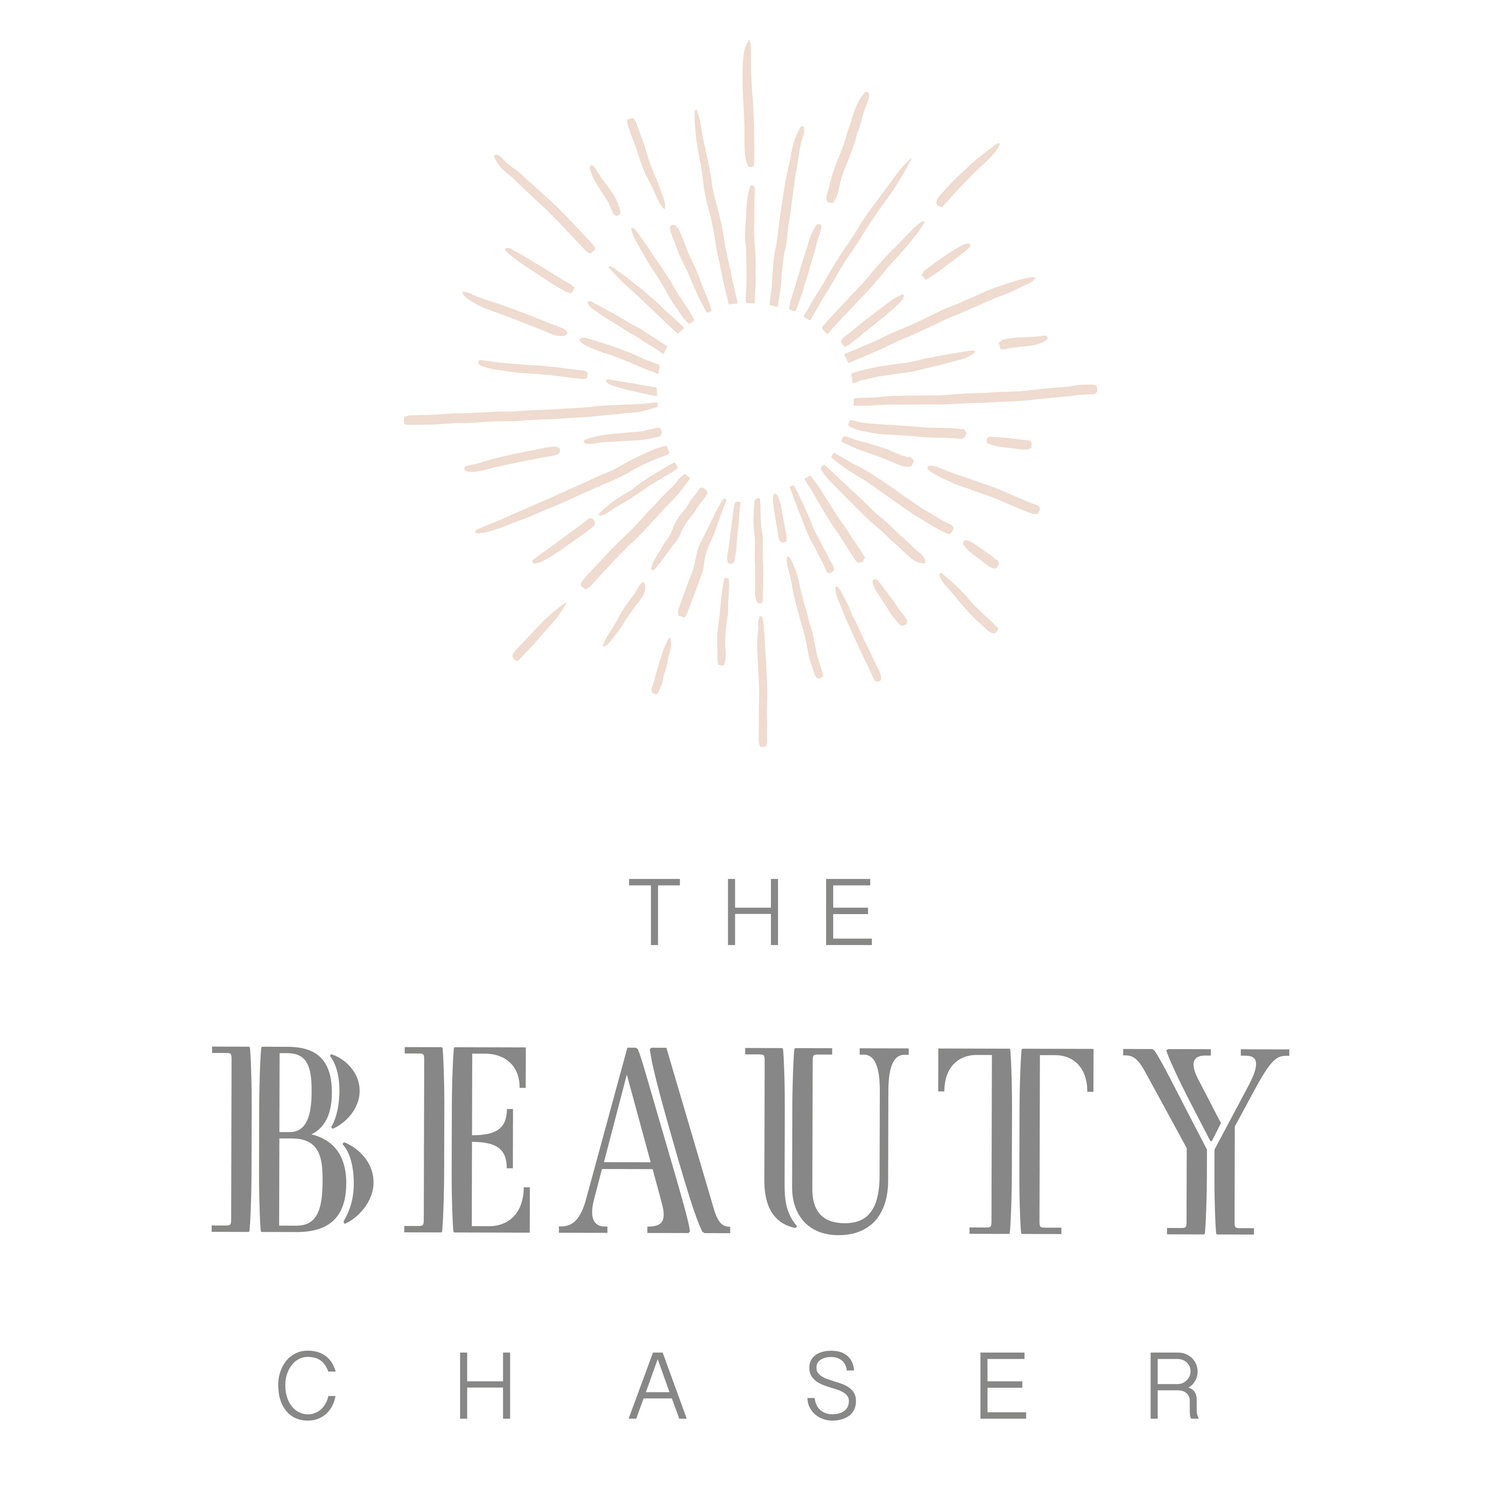 THE BEAUTY CHASER